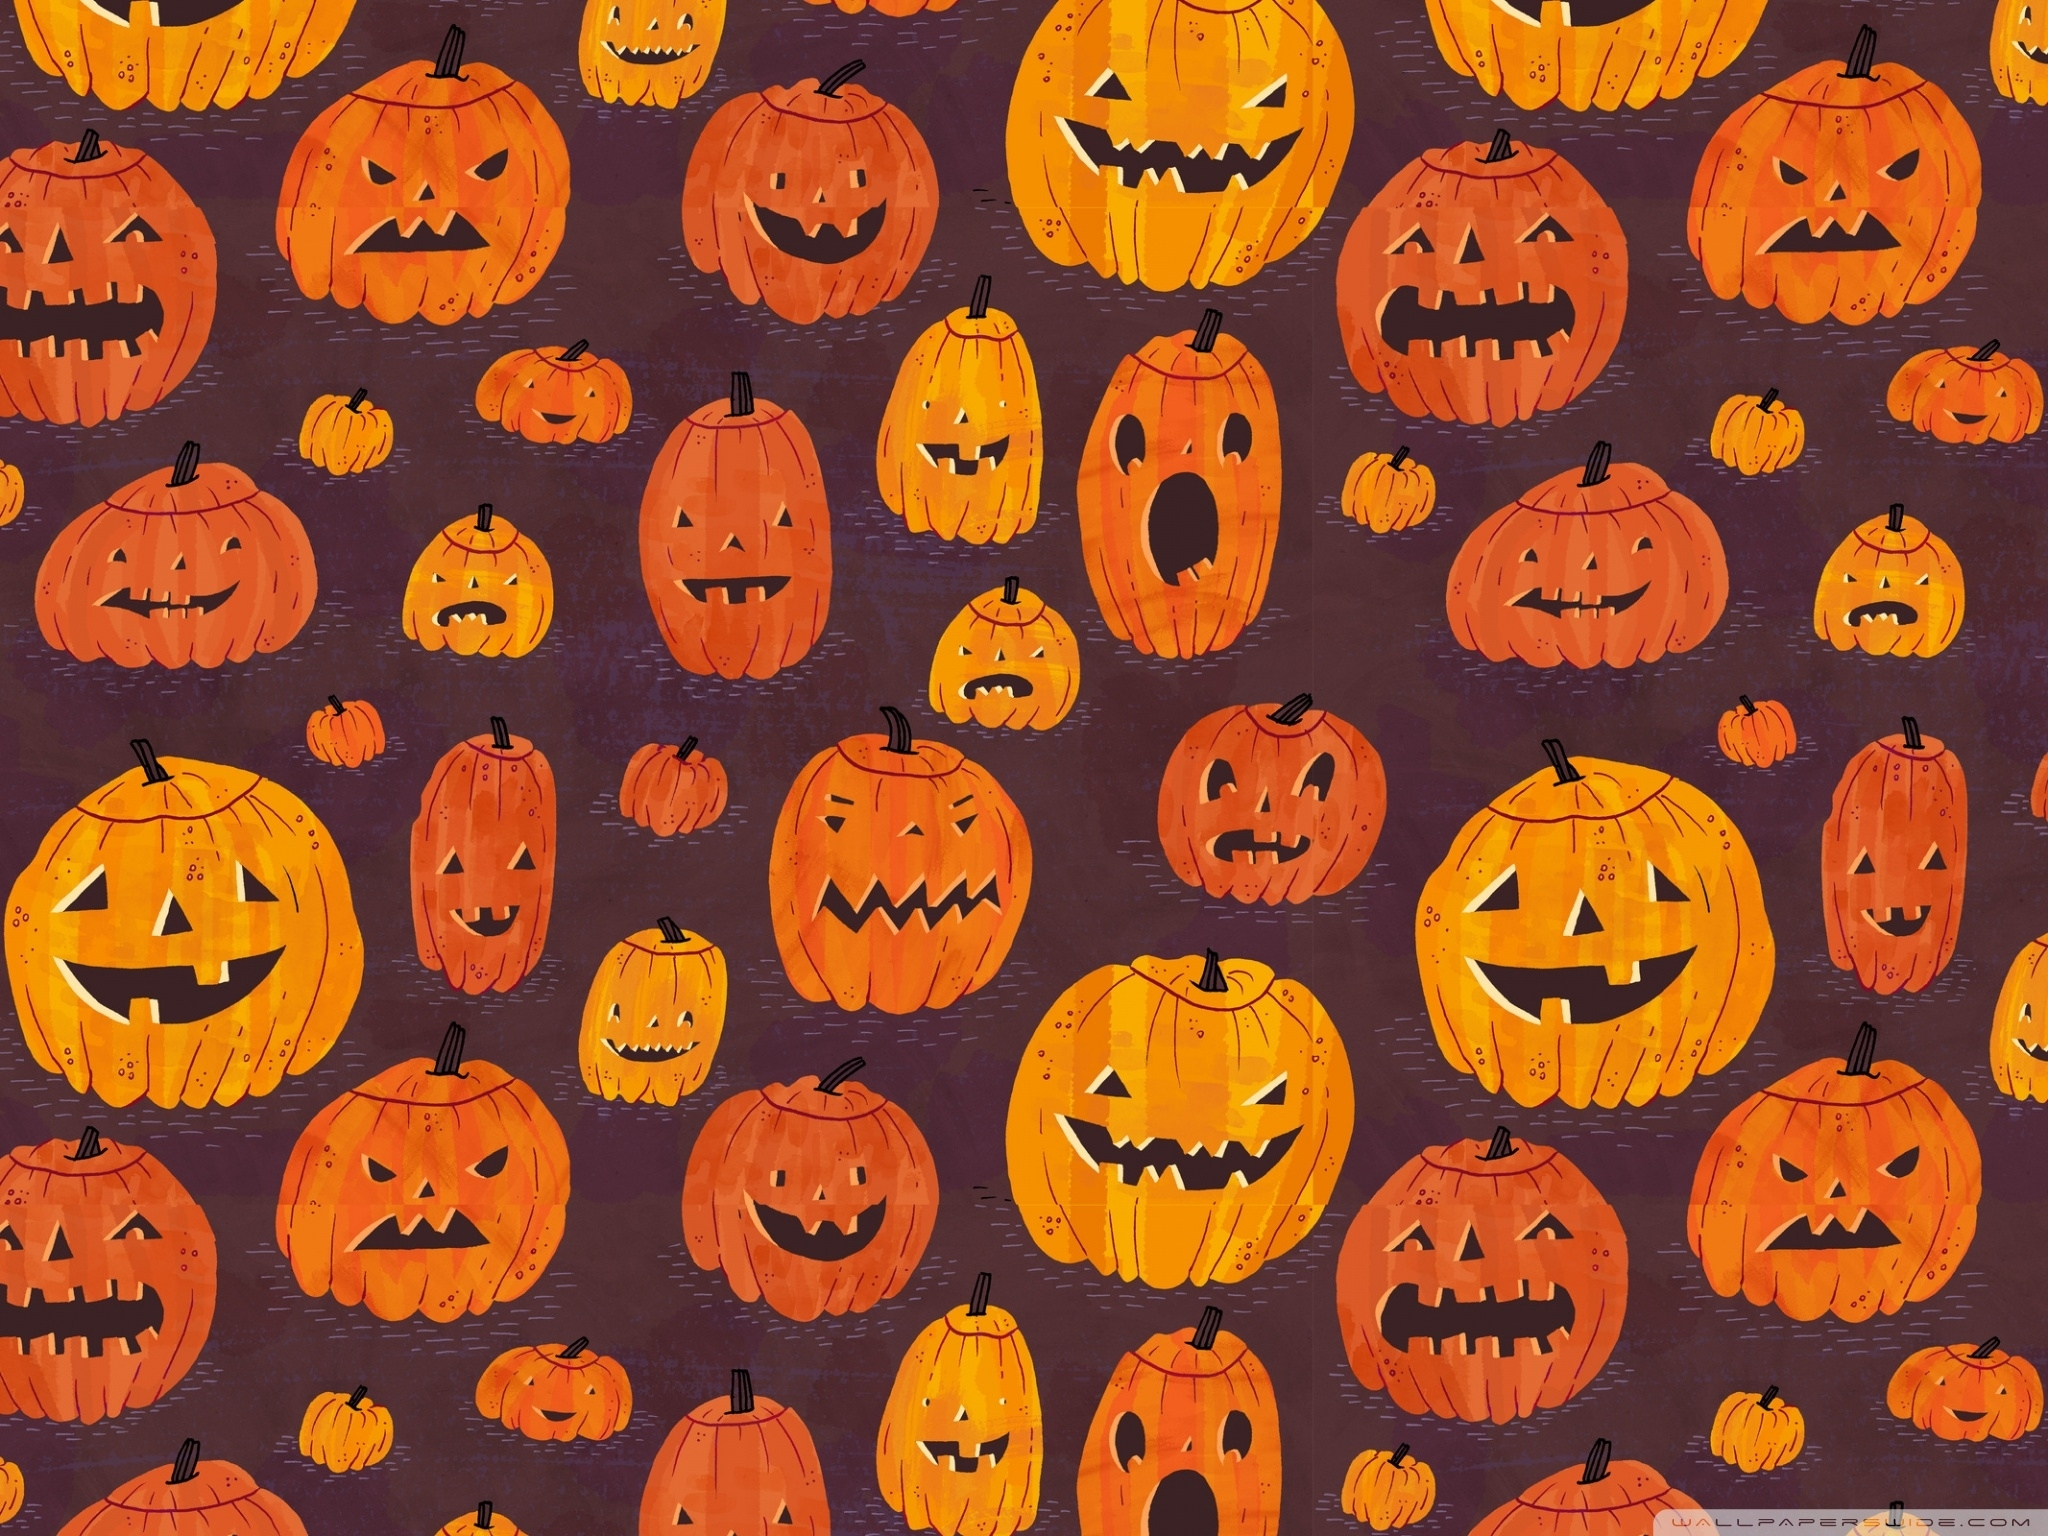 halloween pumpkins pattern ❤ 4k hd desktop wallpaper for 4k ultra